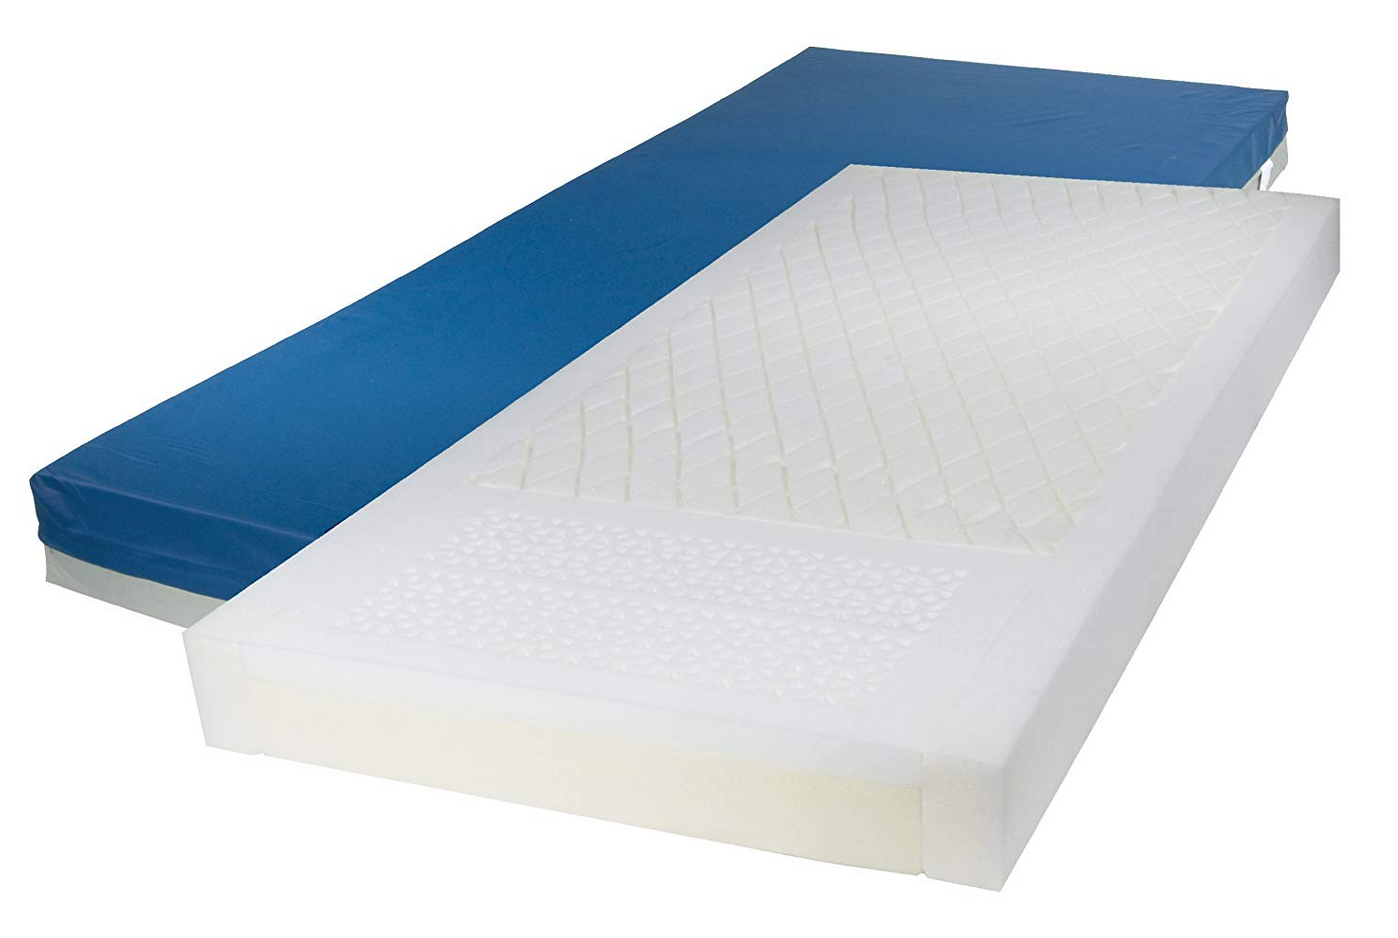 12 Best Hospital (Medical/Therapeutic) Bed Mattresses & Mattress